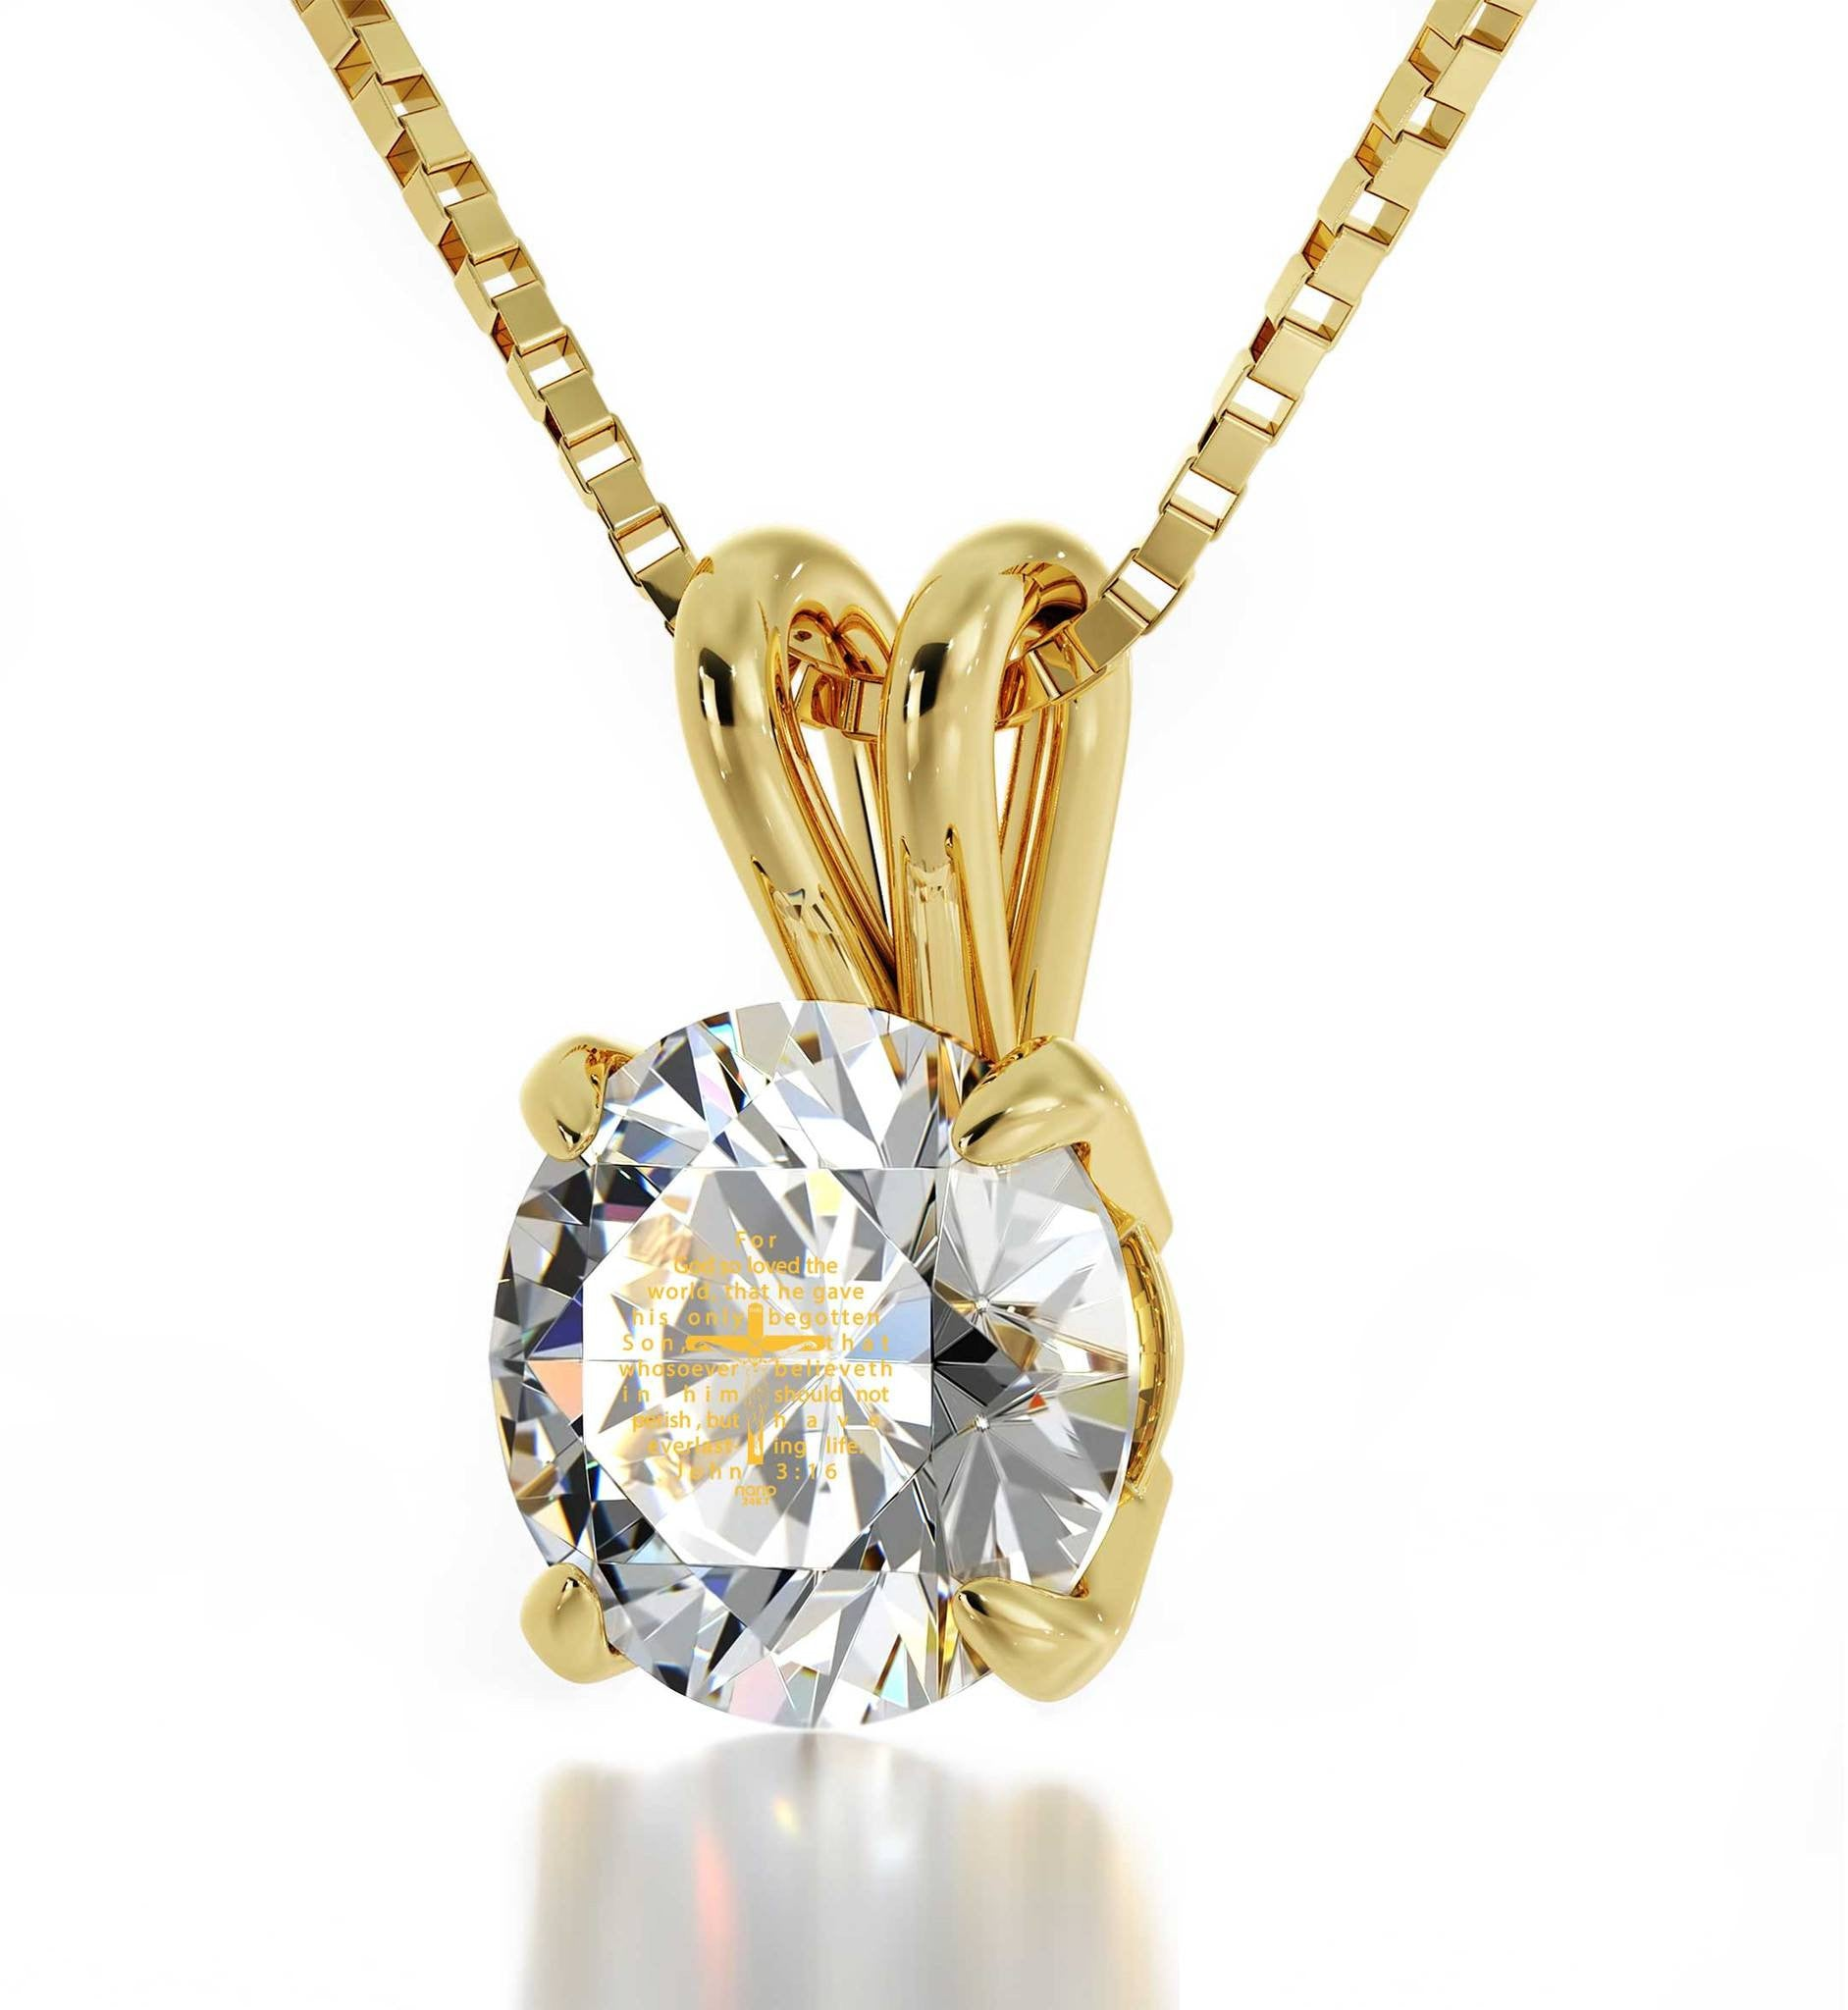 """John 3-16Engravedin 24k, LadiesGifts for Christmas, Presents for MomBirthday, DiamondSolitaireNecklace"""